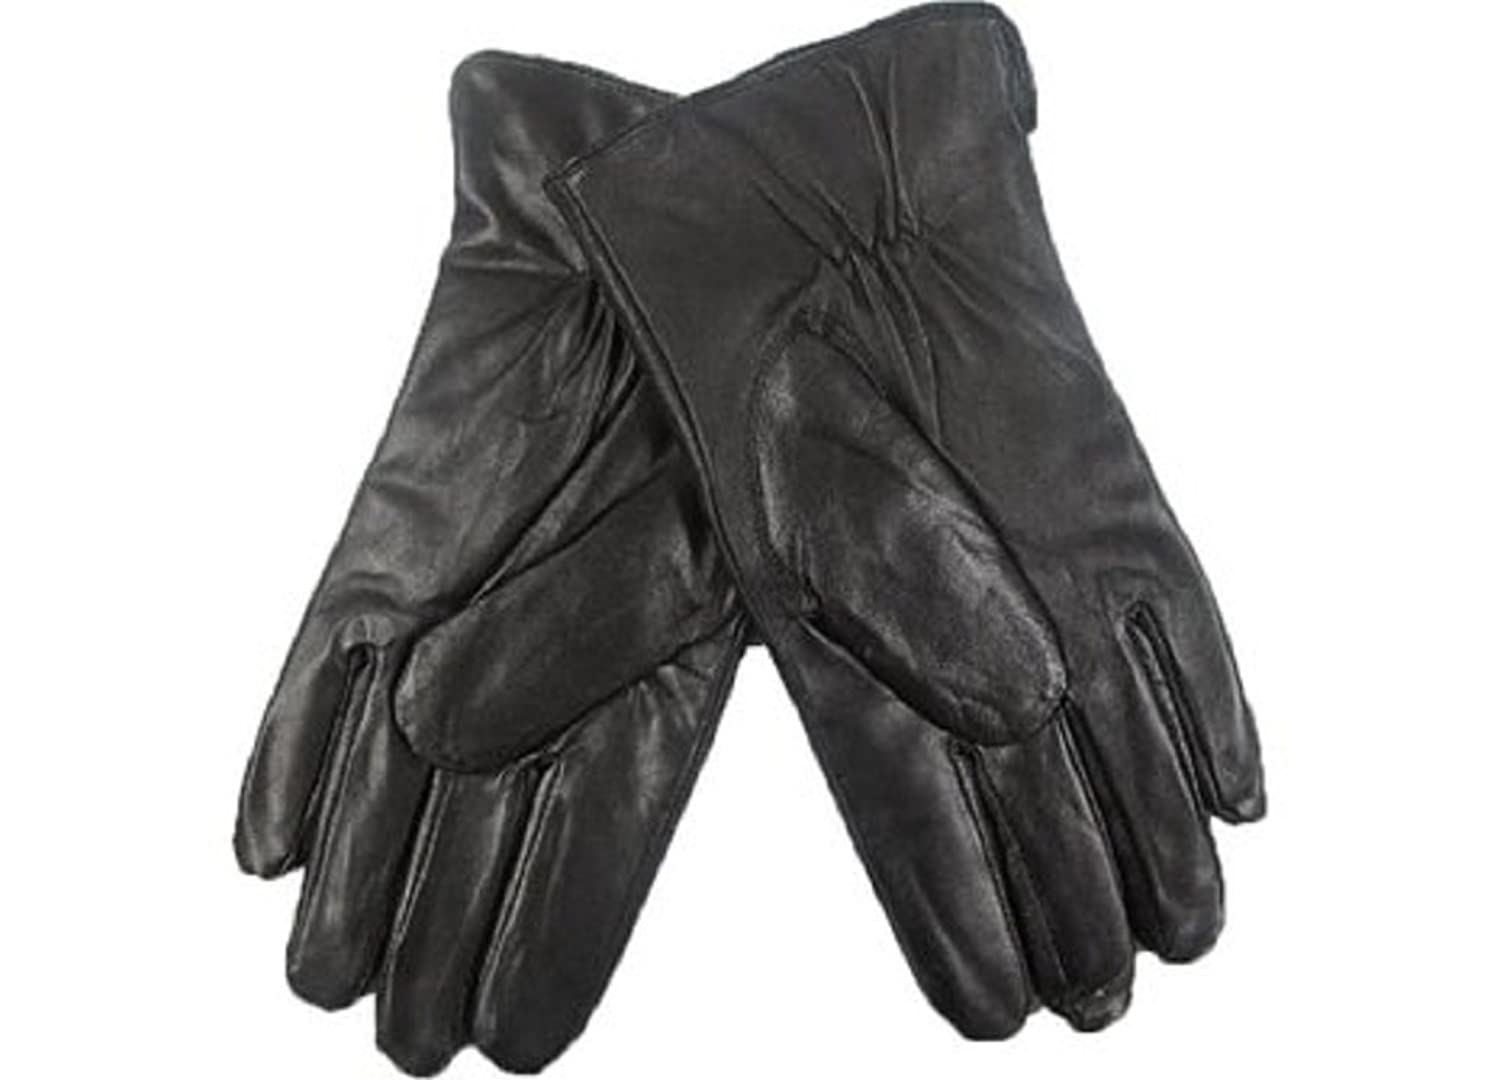 Mens leather gloves rabbit fur lined - Top Quality Men S Rabbit Fur Lined Genuine Soft Black Leather Gloves 2xlarge At Amazon Men S Clothing Store